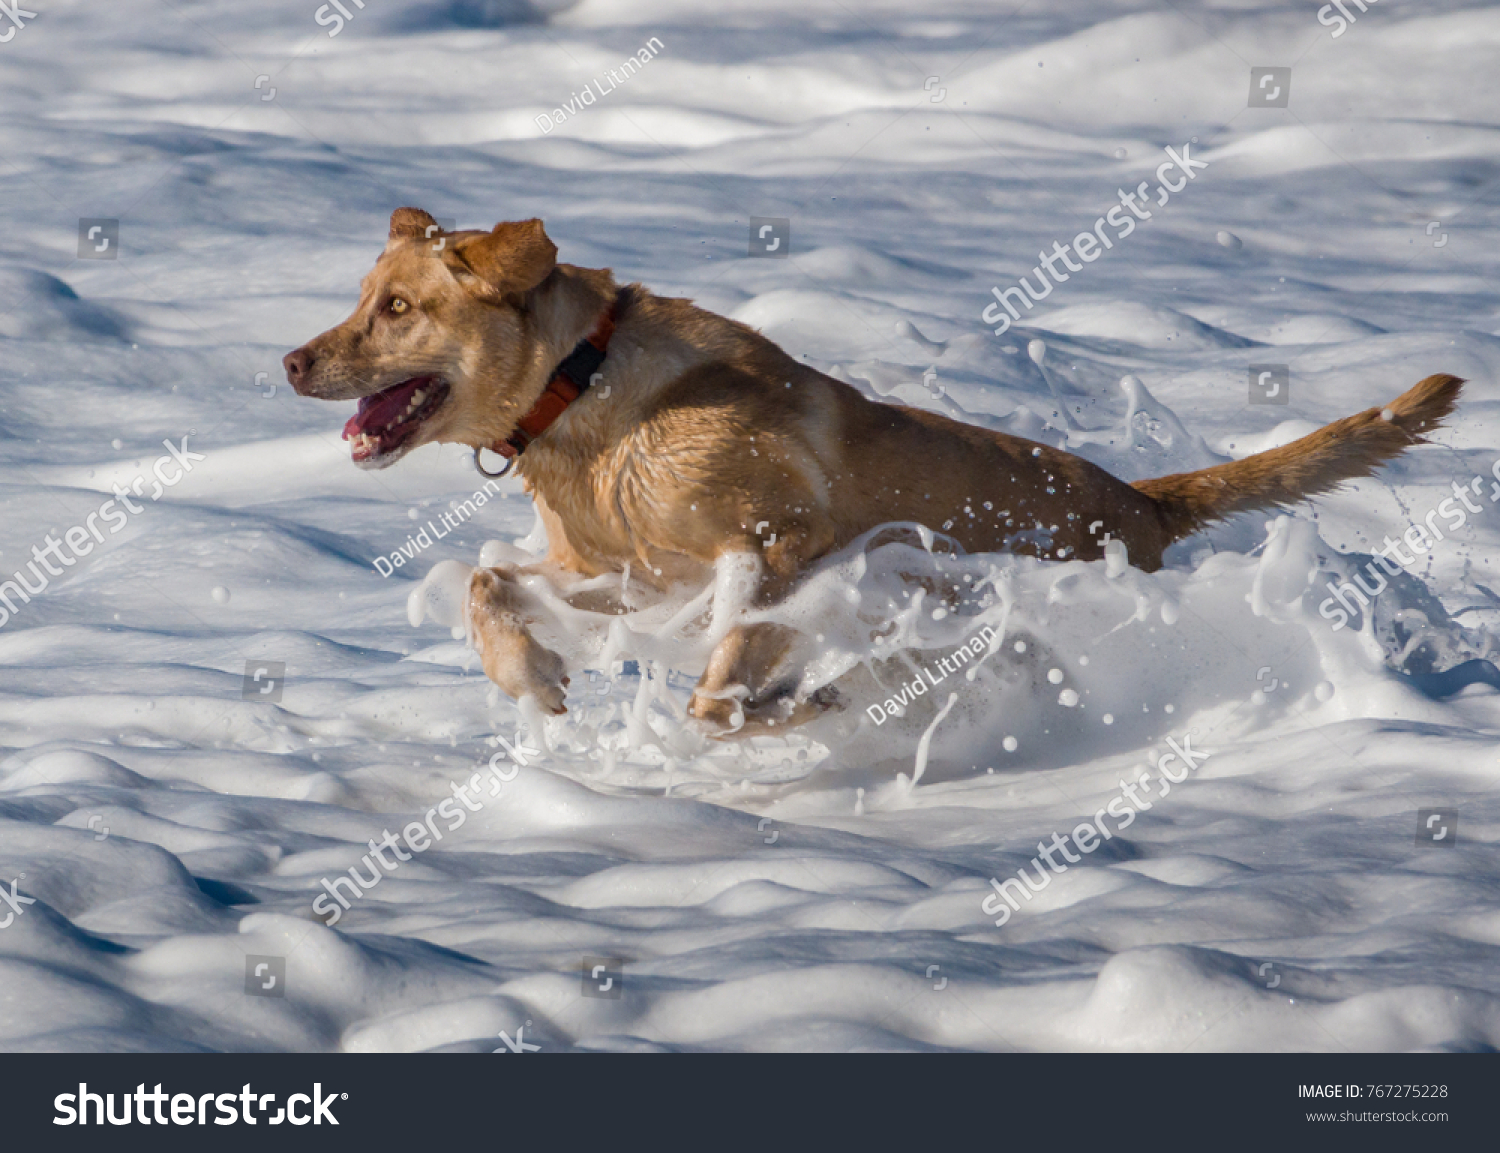 An energetic yellow Labrador Retriever runs through the breaking surf at the dog-friendly beach of Carmel by the Sea along the Pacific coast of Monterey Bay in central California.